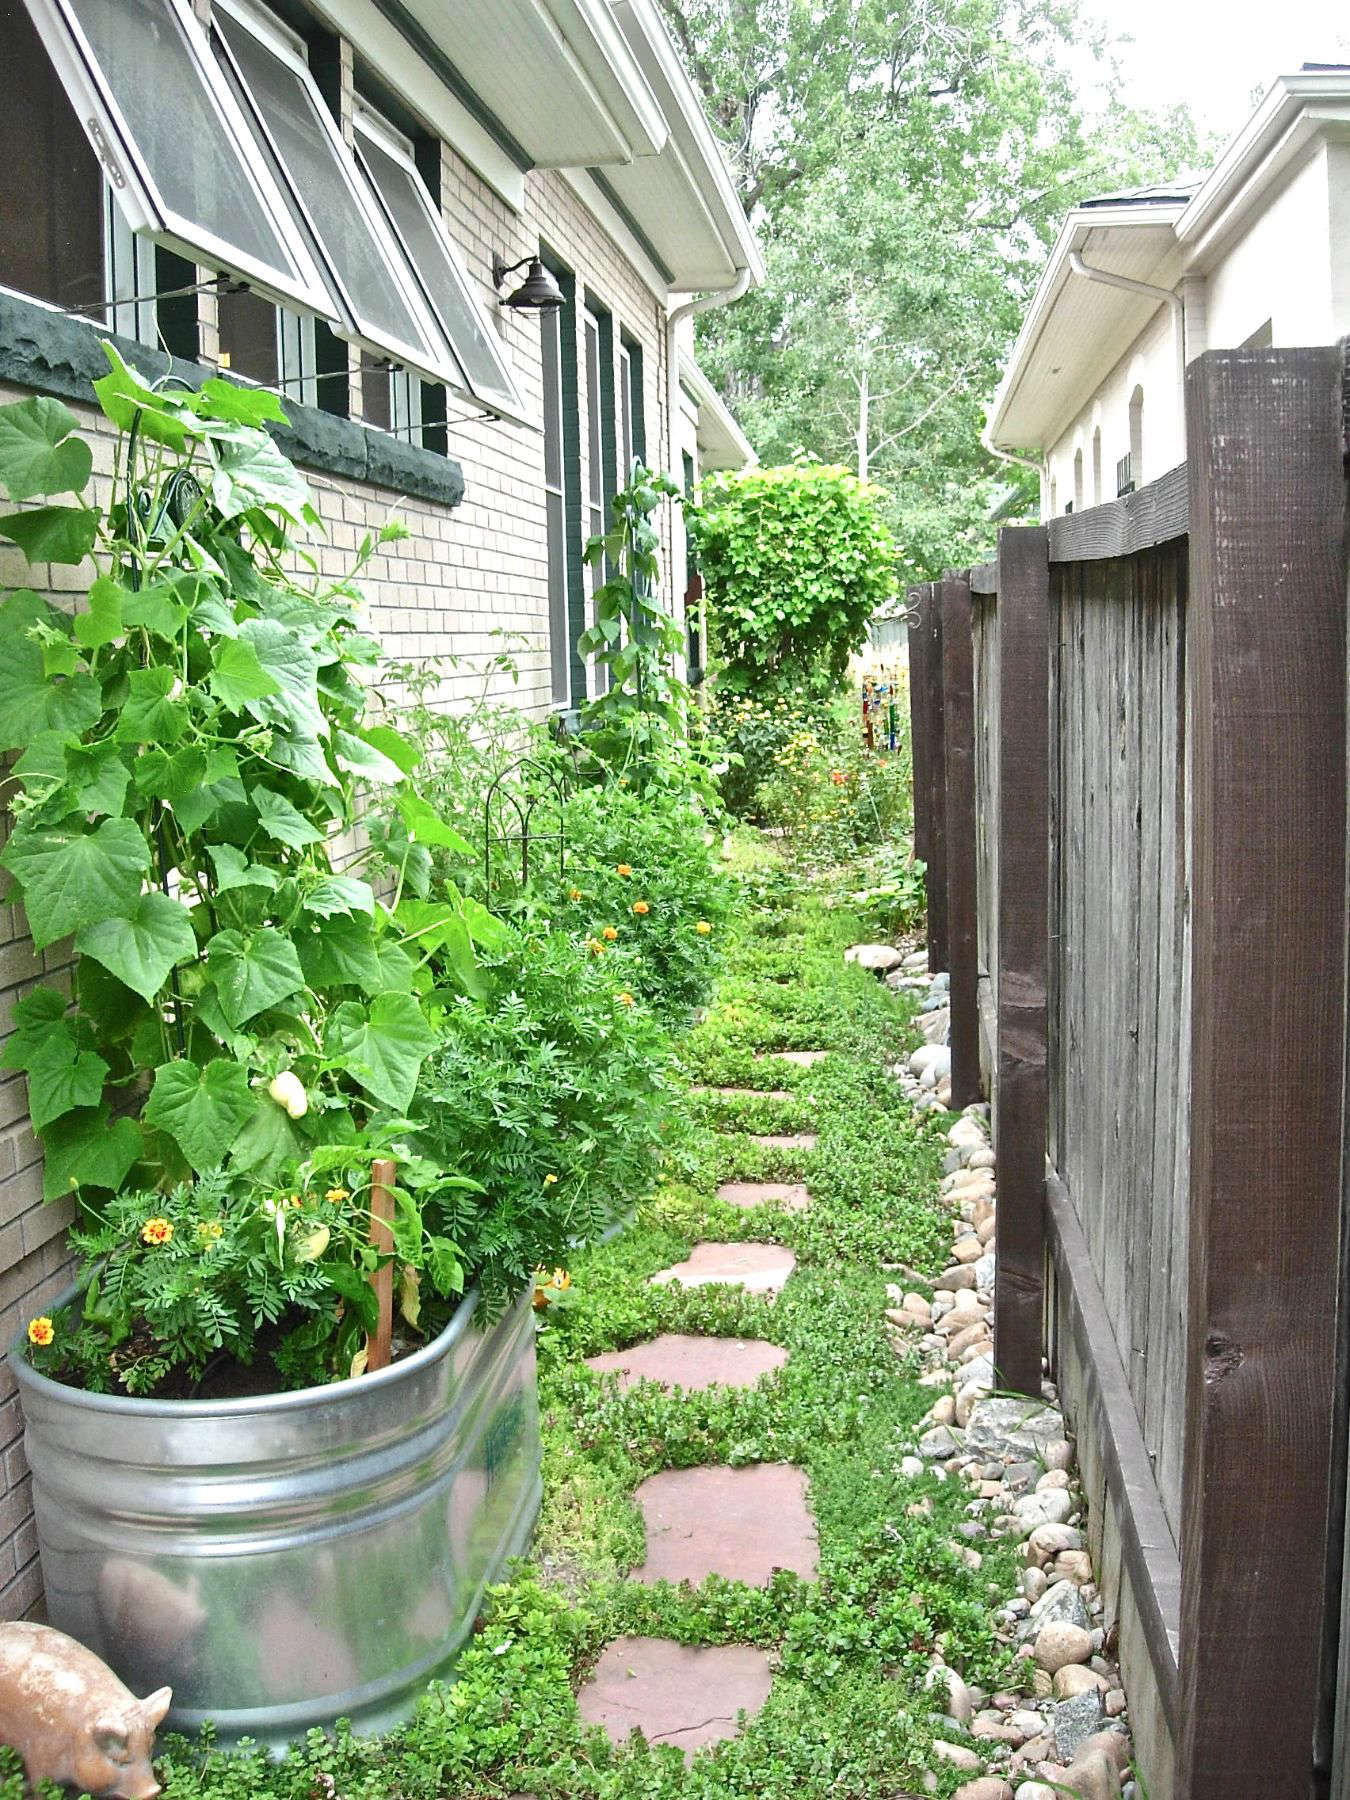 This Tiny Urban Garden in Denver, Colorado, was submitted by Our House Projectand chosen by Rita Konig, who said: &#8